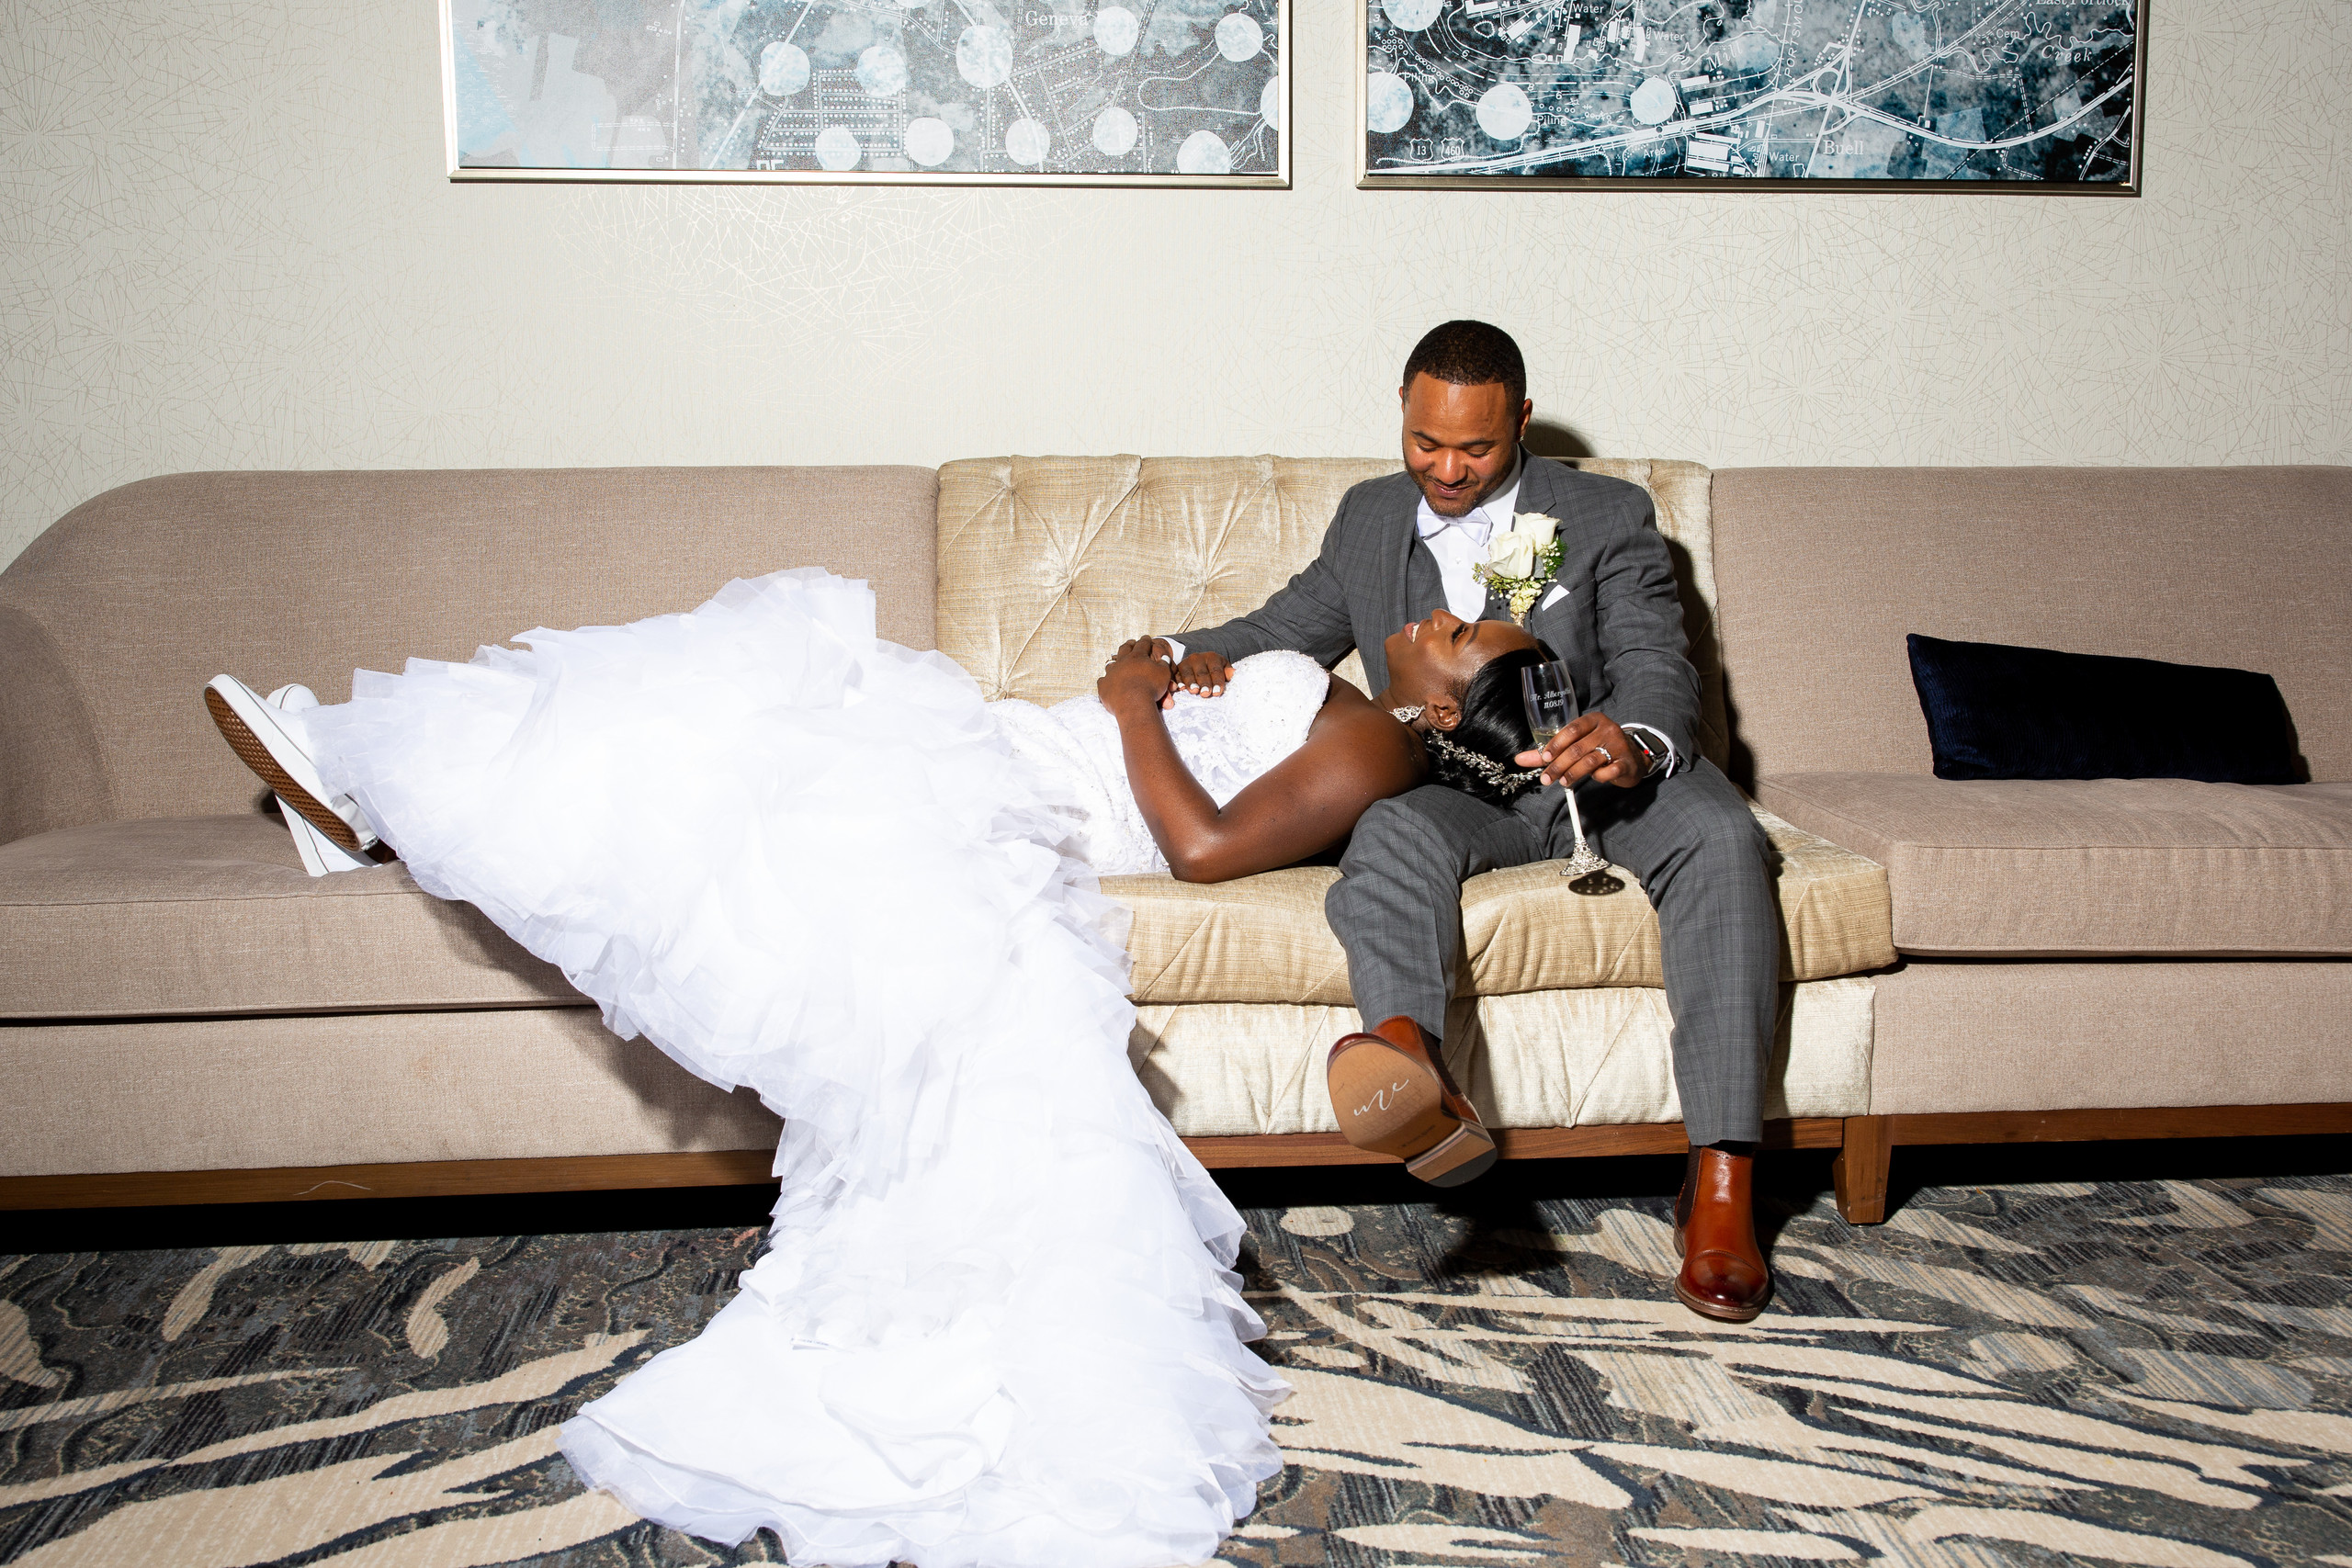 The bride and groom pose for a portrait during the wedding reception at the Hilton Main in Norfolk, Virginia.